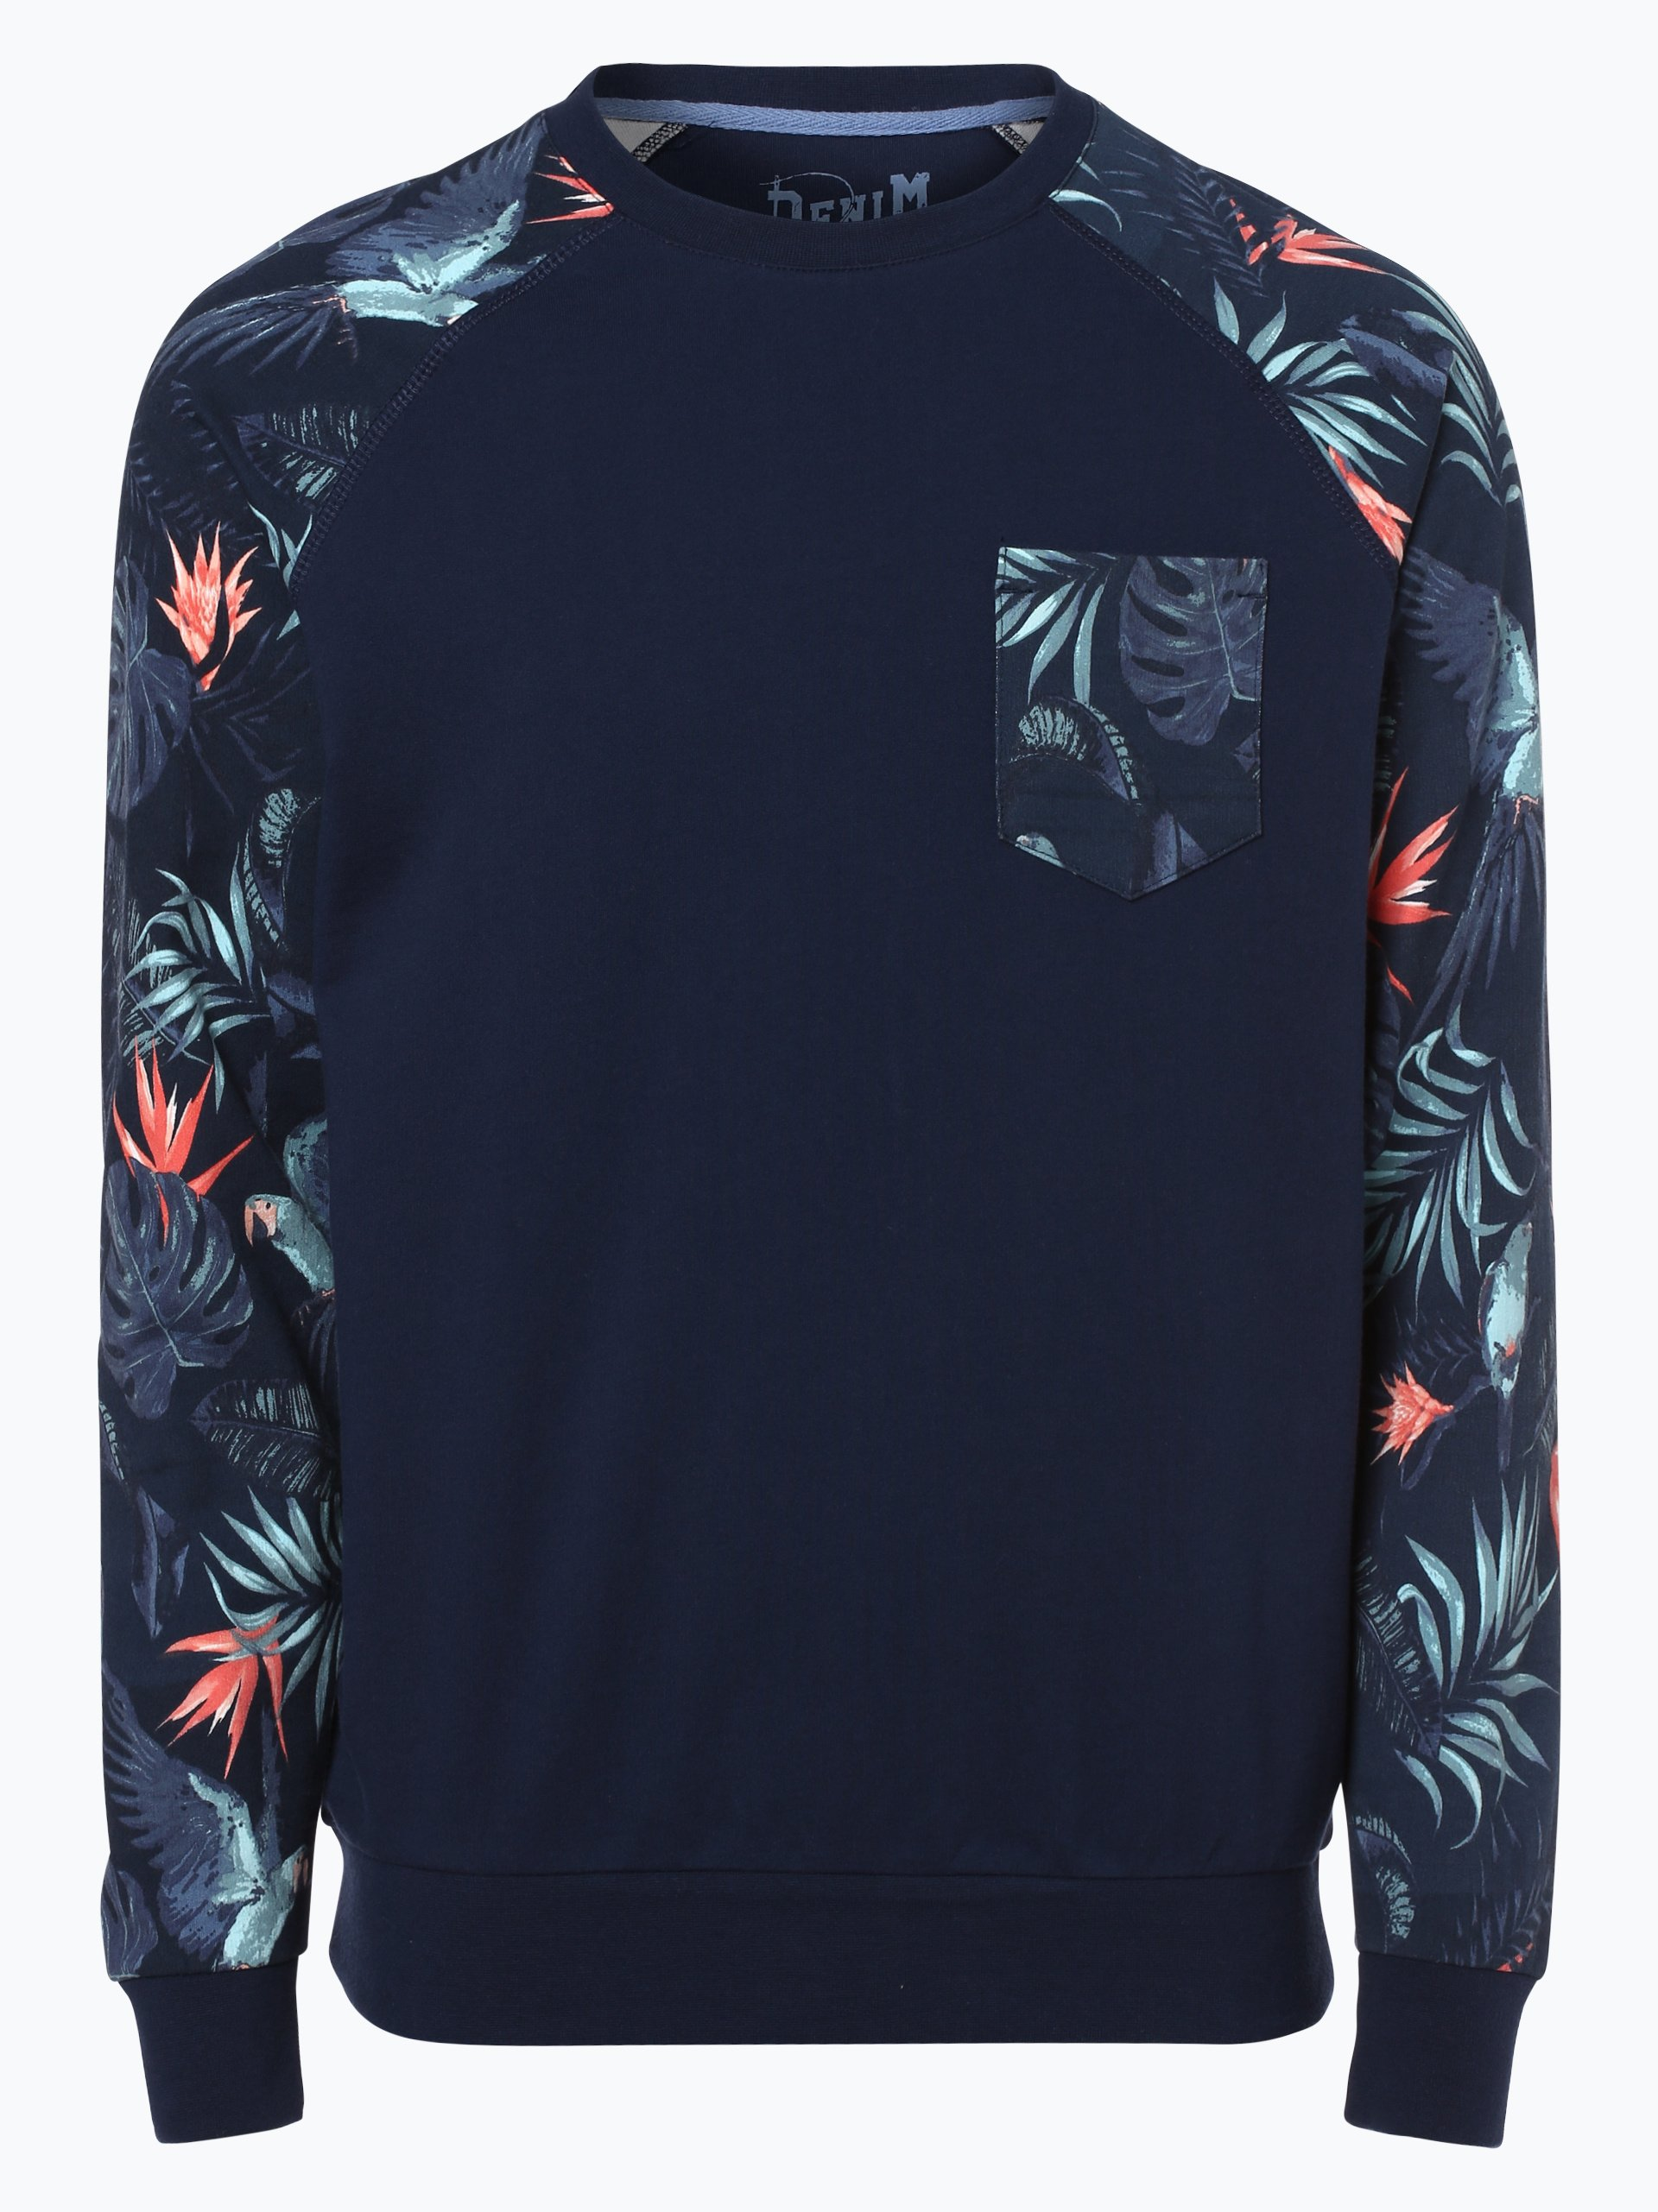 DENIM by Nils Sundström Herren Sweatshirt